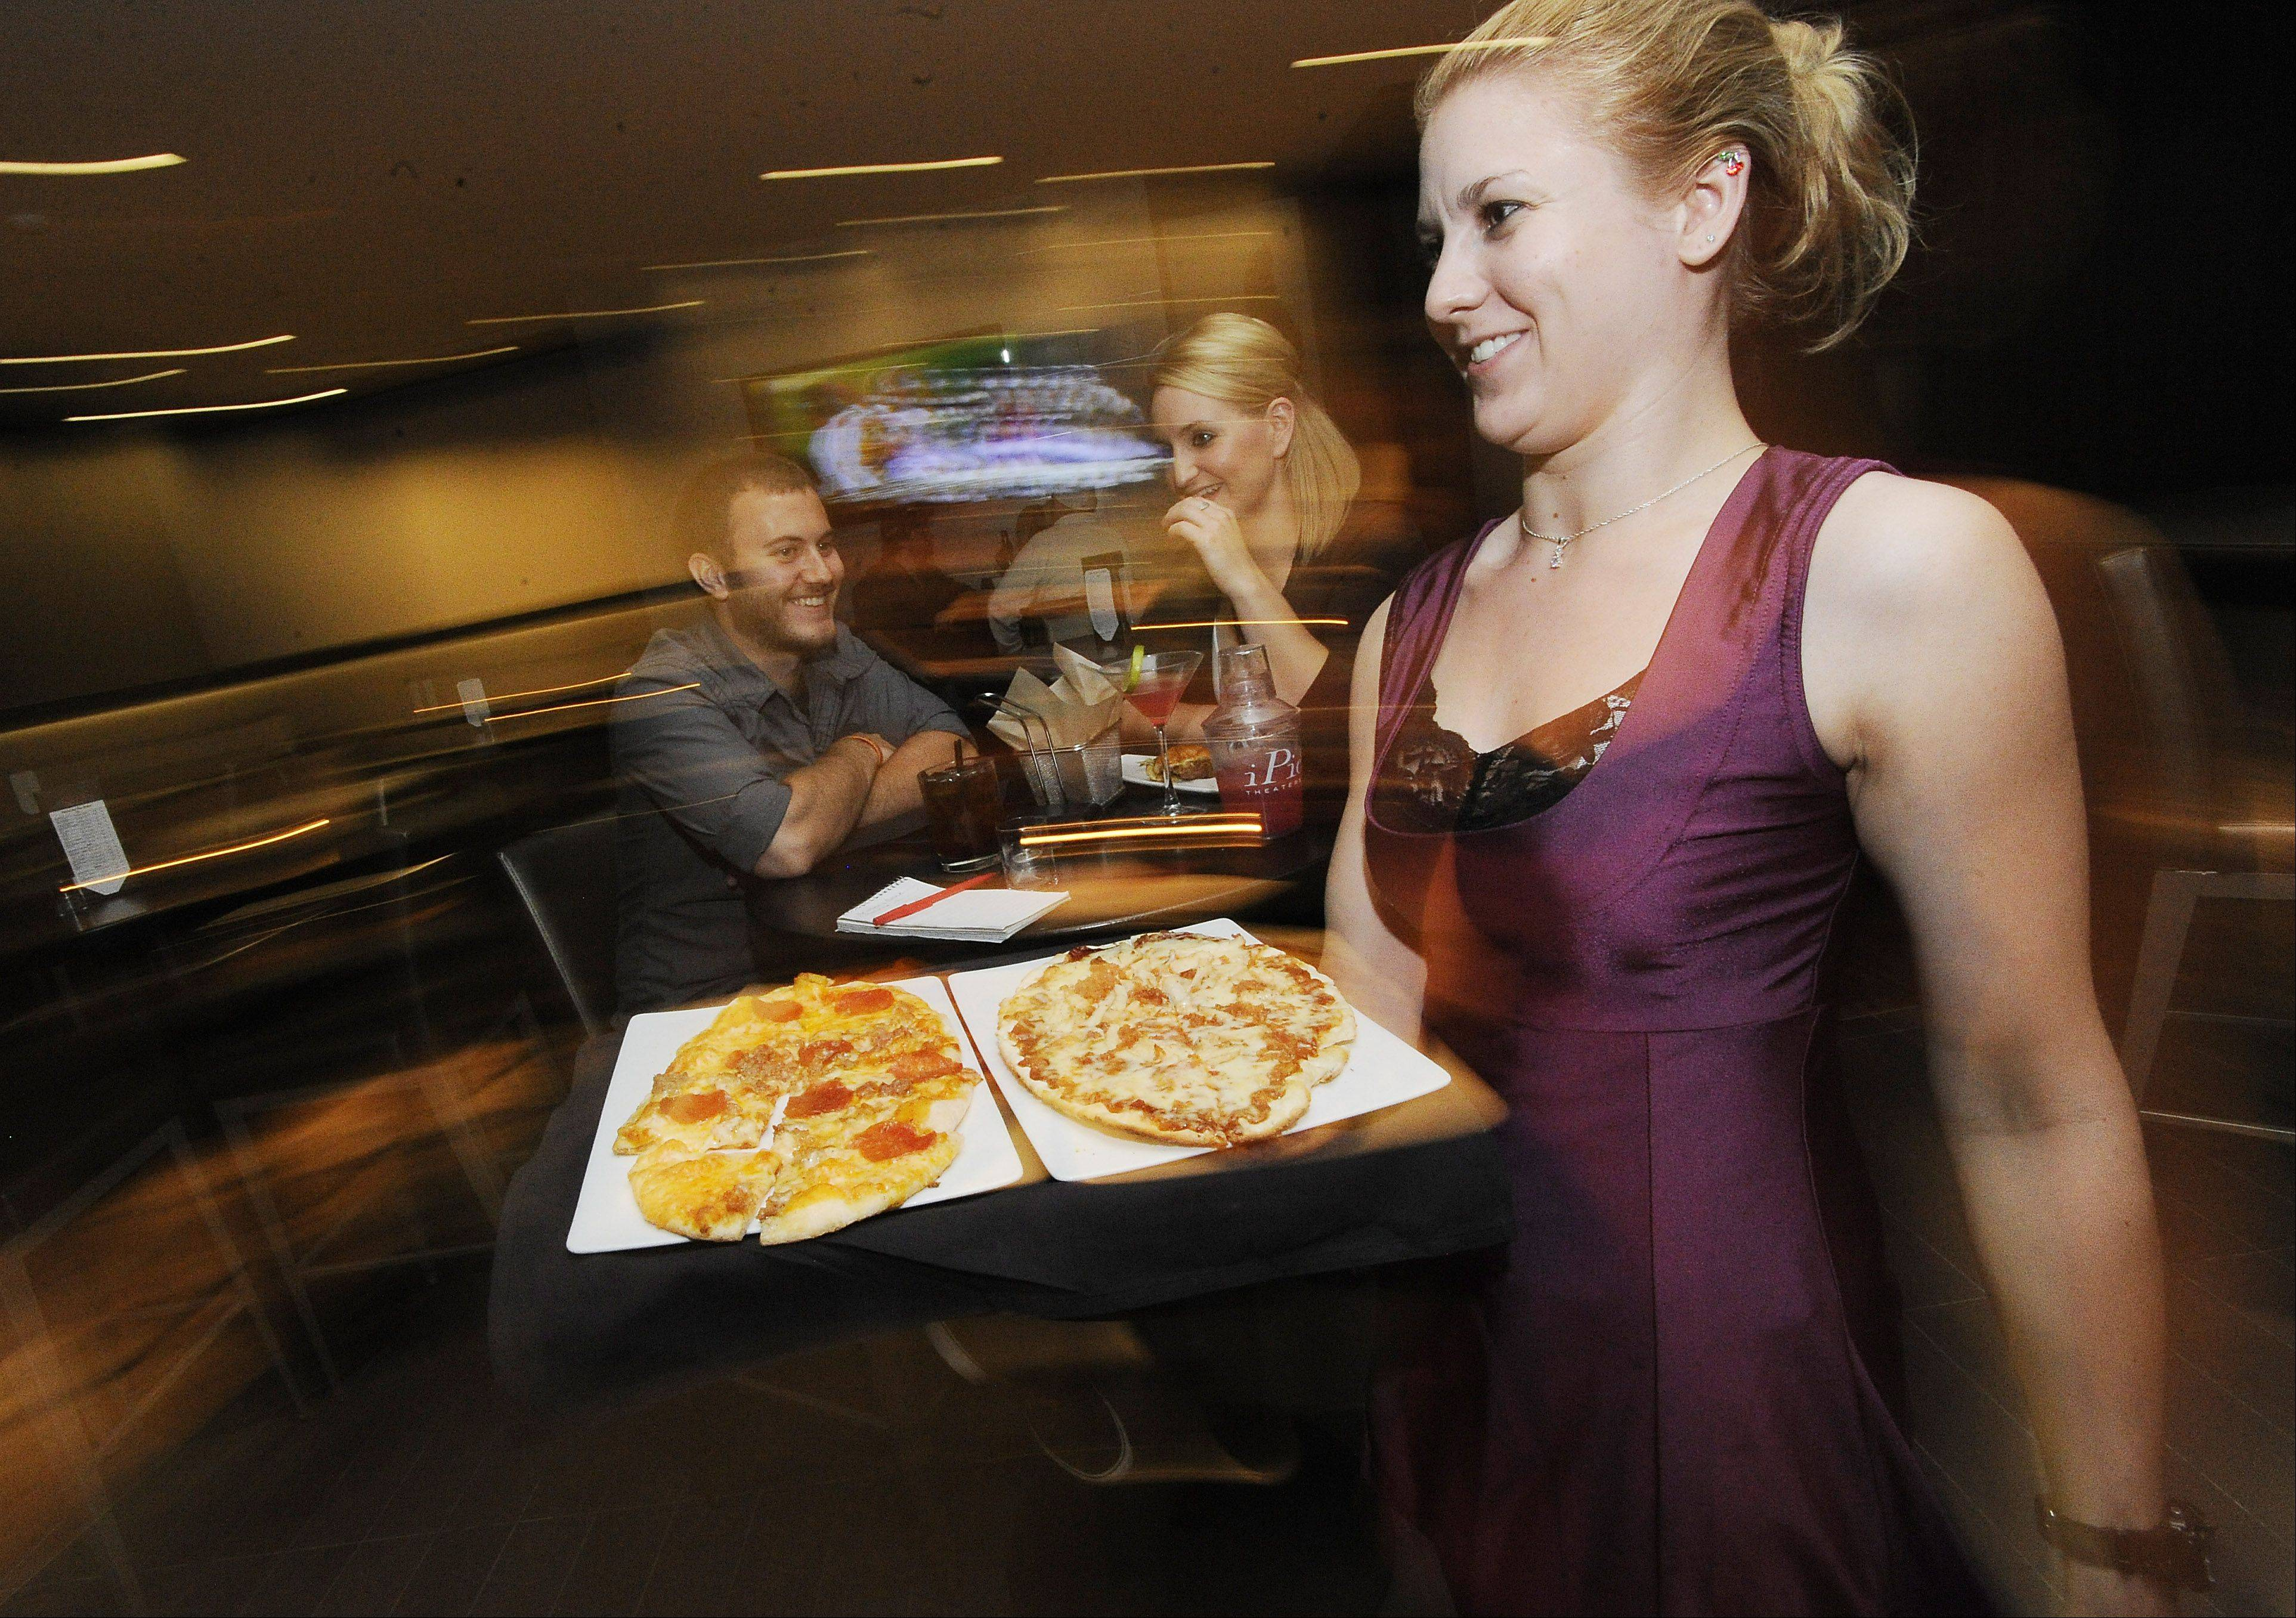 Waitress Tina Krentz of Arlington Heights delivers pizza to patrons as Ryan Mallegri, 23, of Huntley, and Ashley Venturella, 24 of Mount Prospect, enjoy drinks.